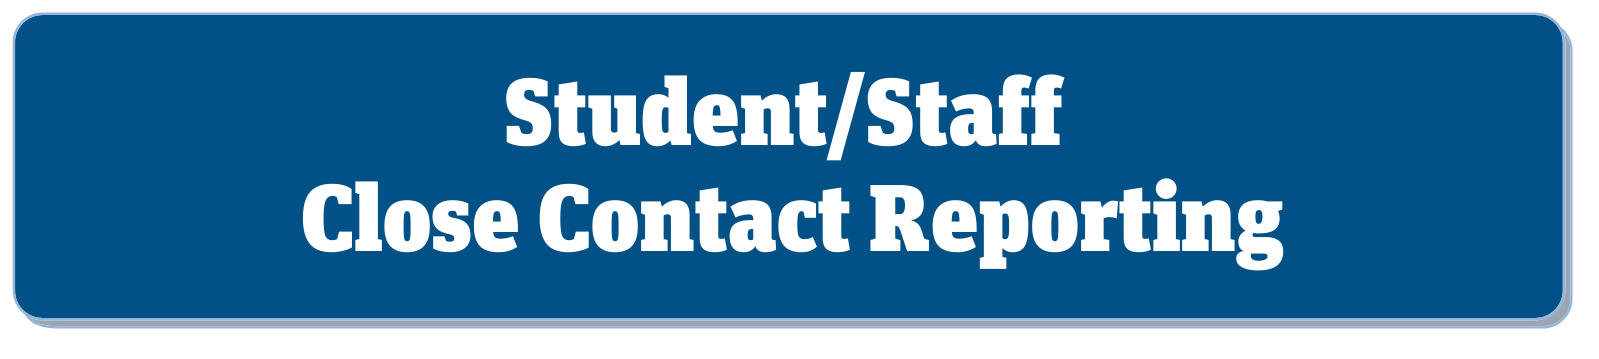 close contact reporting